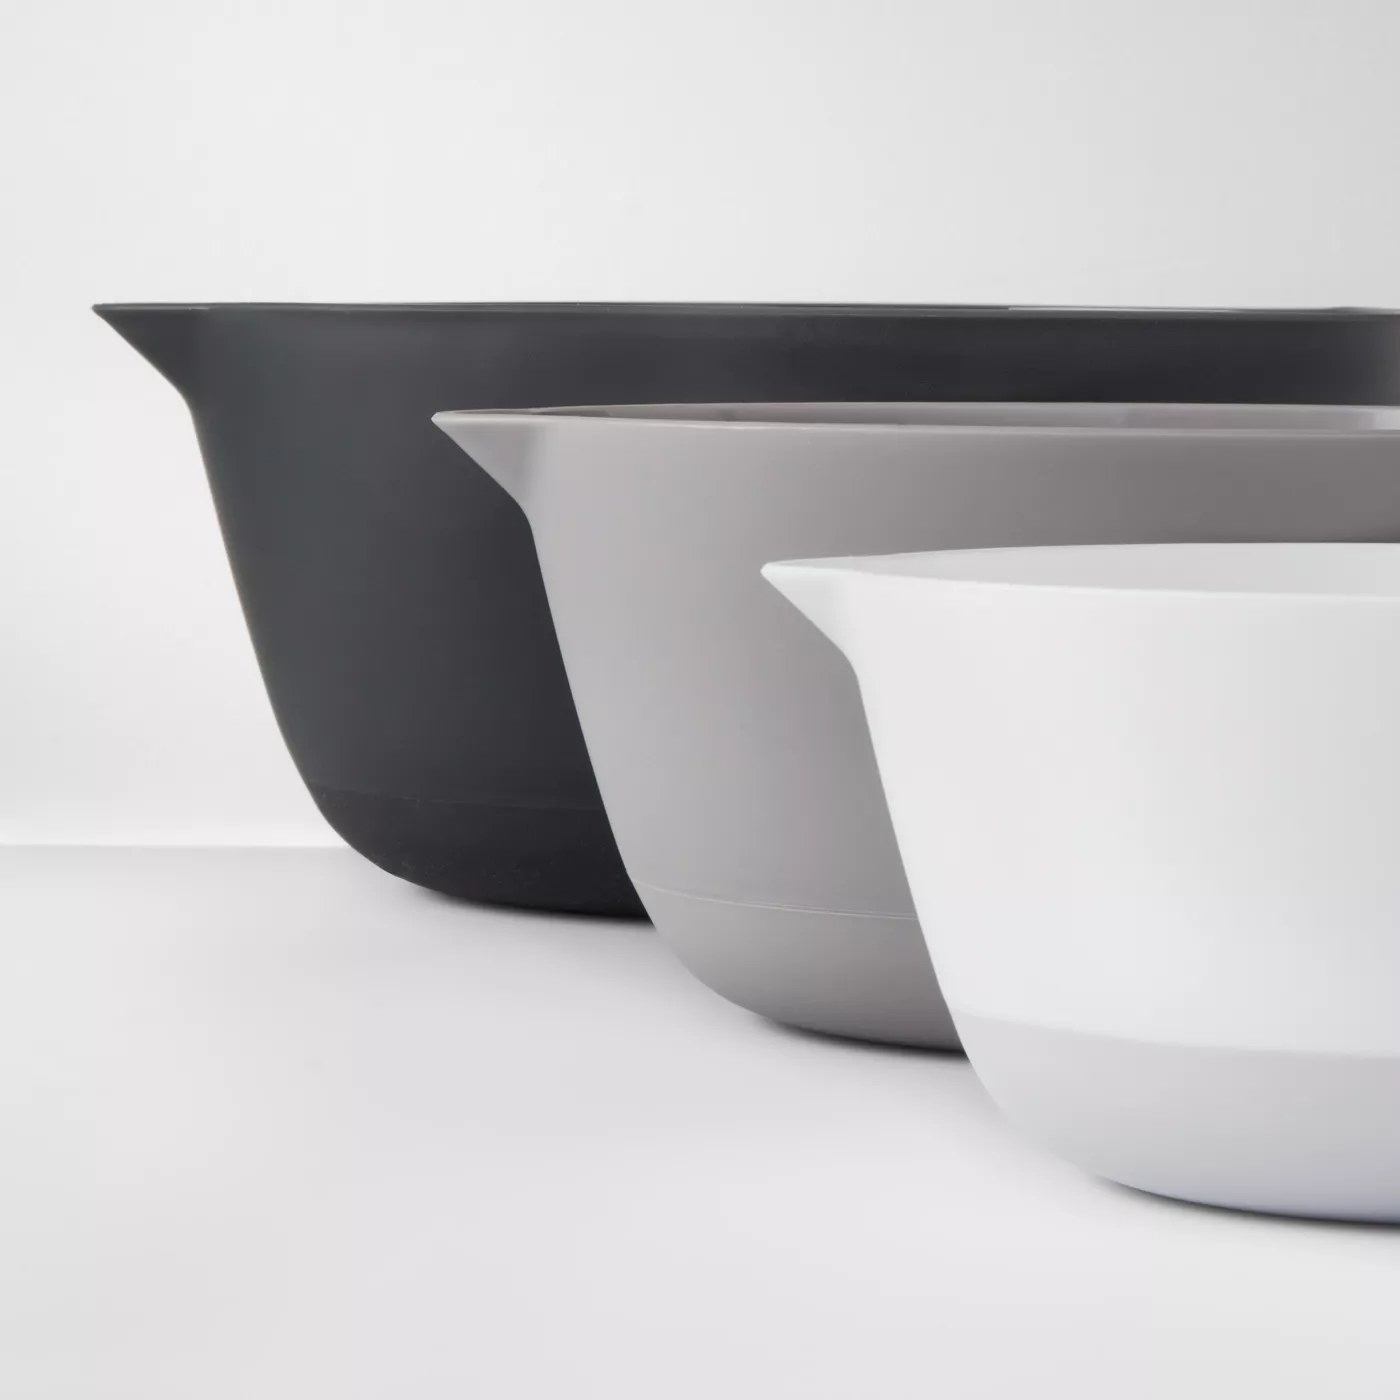 The mixing bowls shown next to each other in ascending order